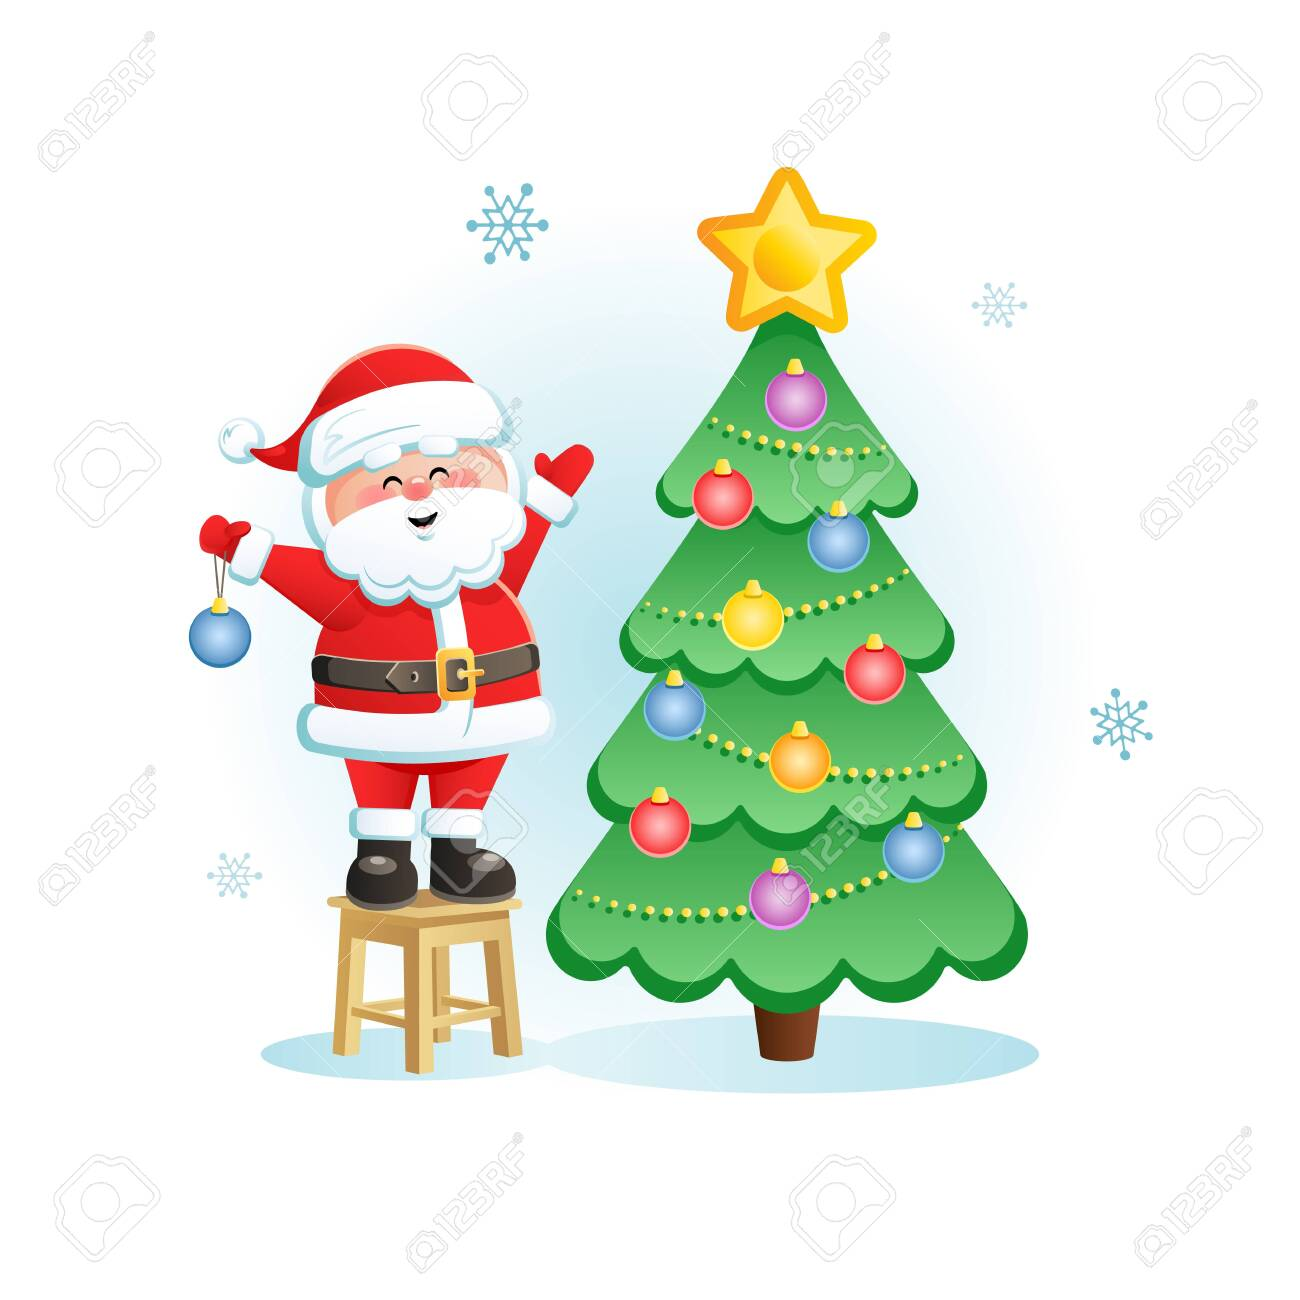 merry santa claus with christmas tree cute christmas cartoon royalty free cliparts vectors and stock illustration image 128857531 123rf com